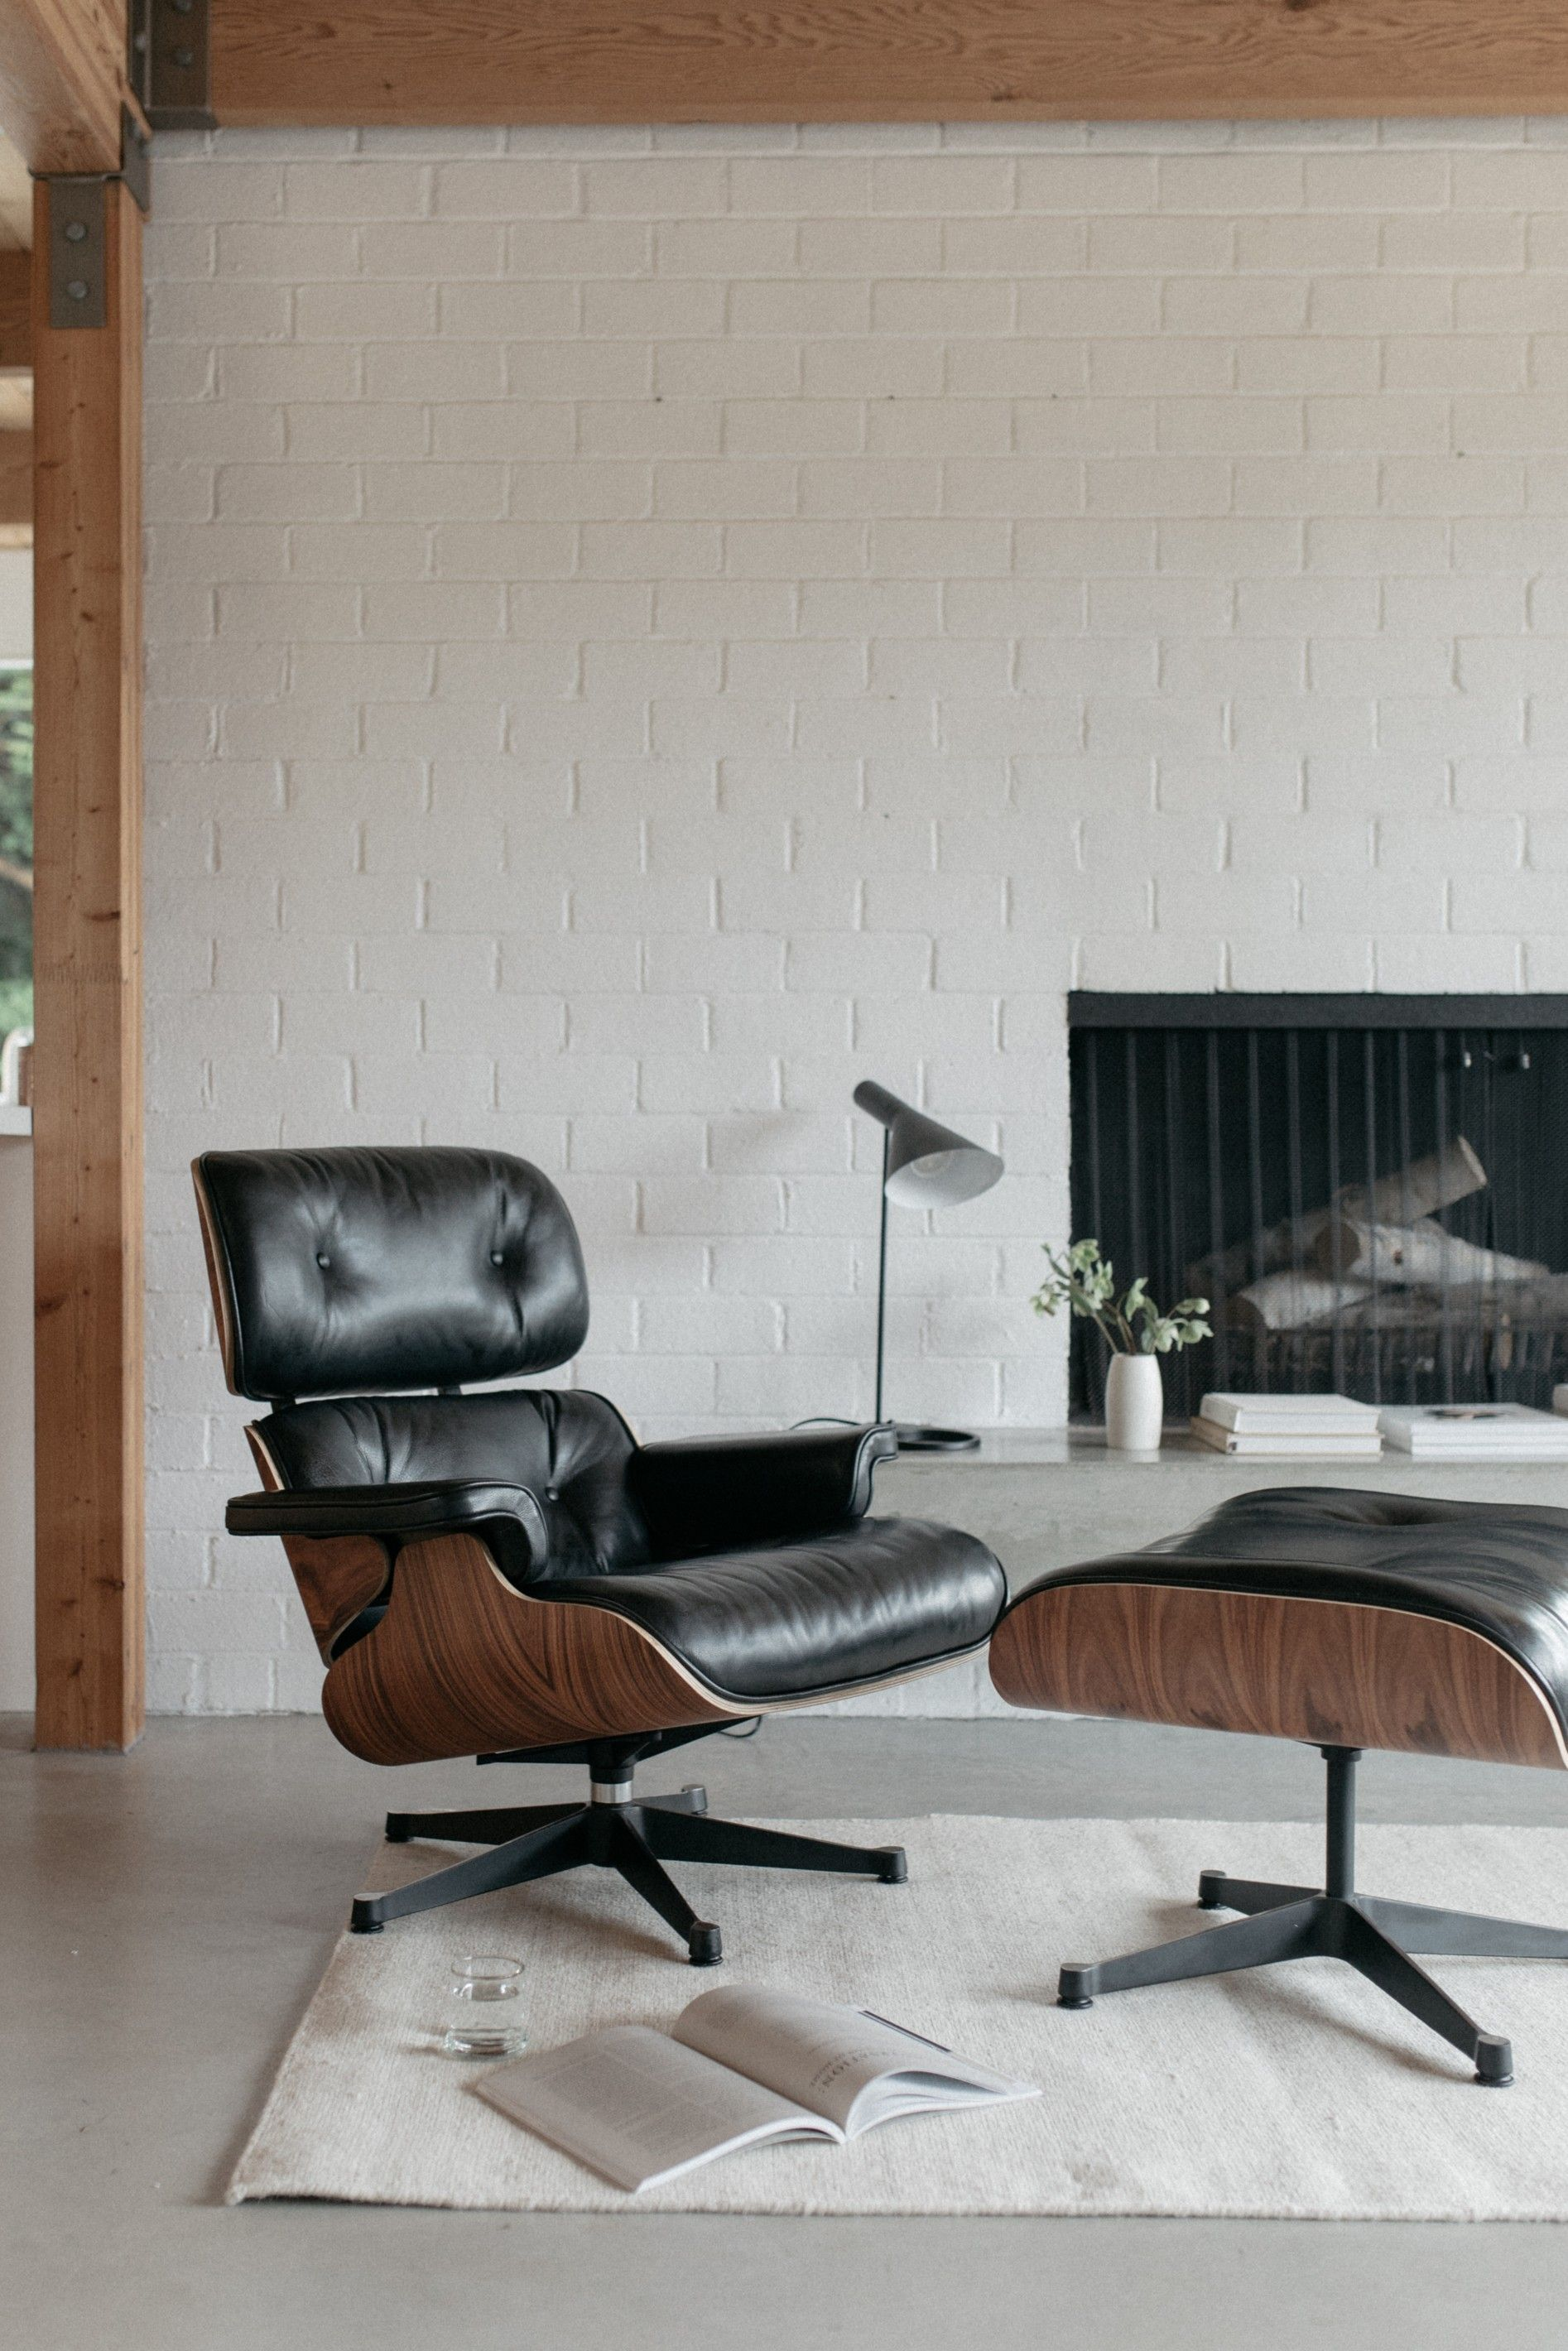 Eames Lounge Chair Living Room eames lounge chair and ottoman #midcentury #modern #design